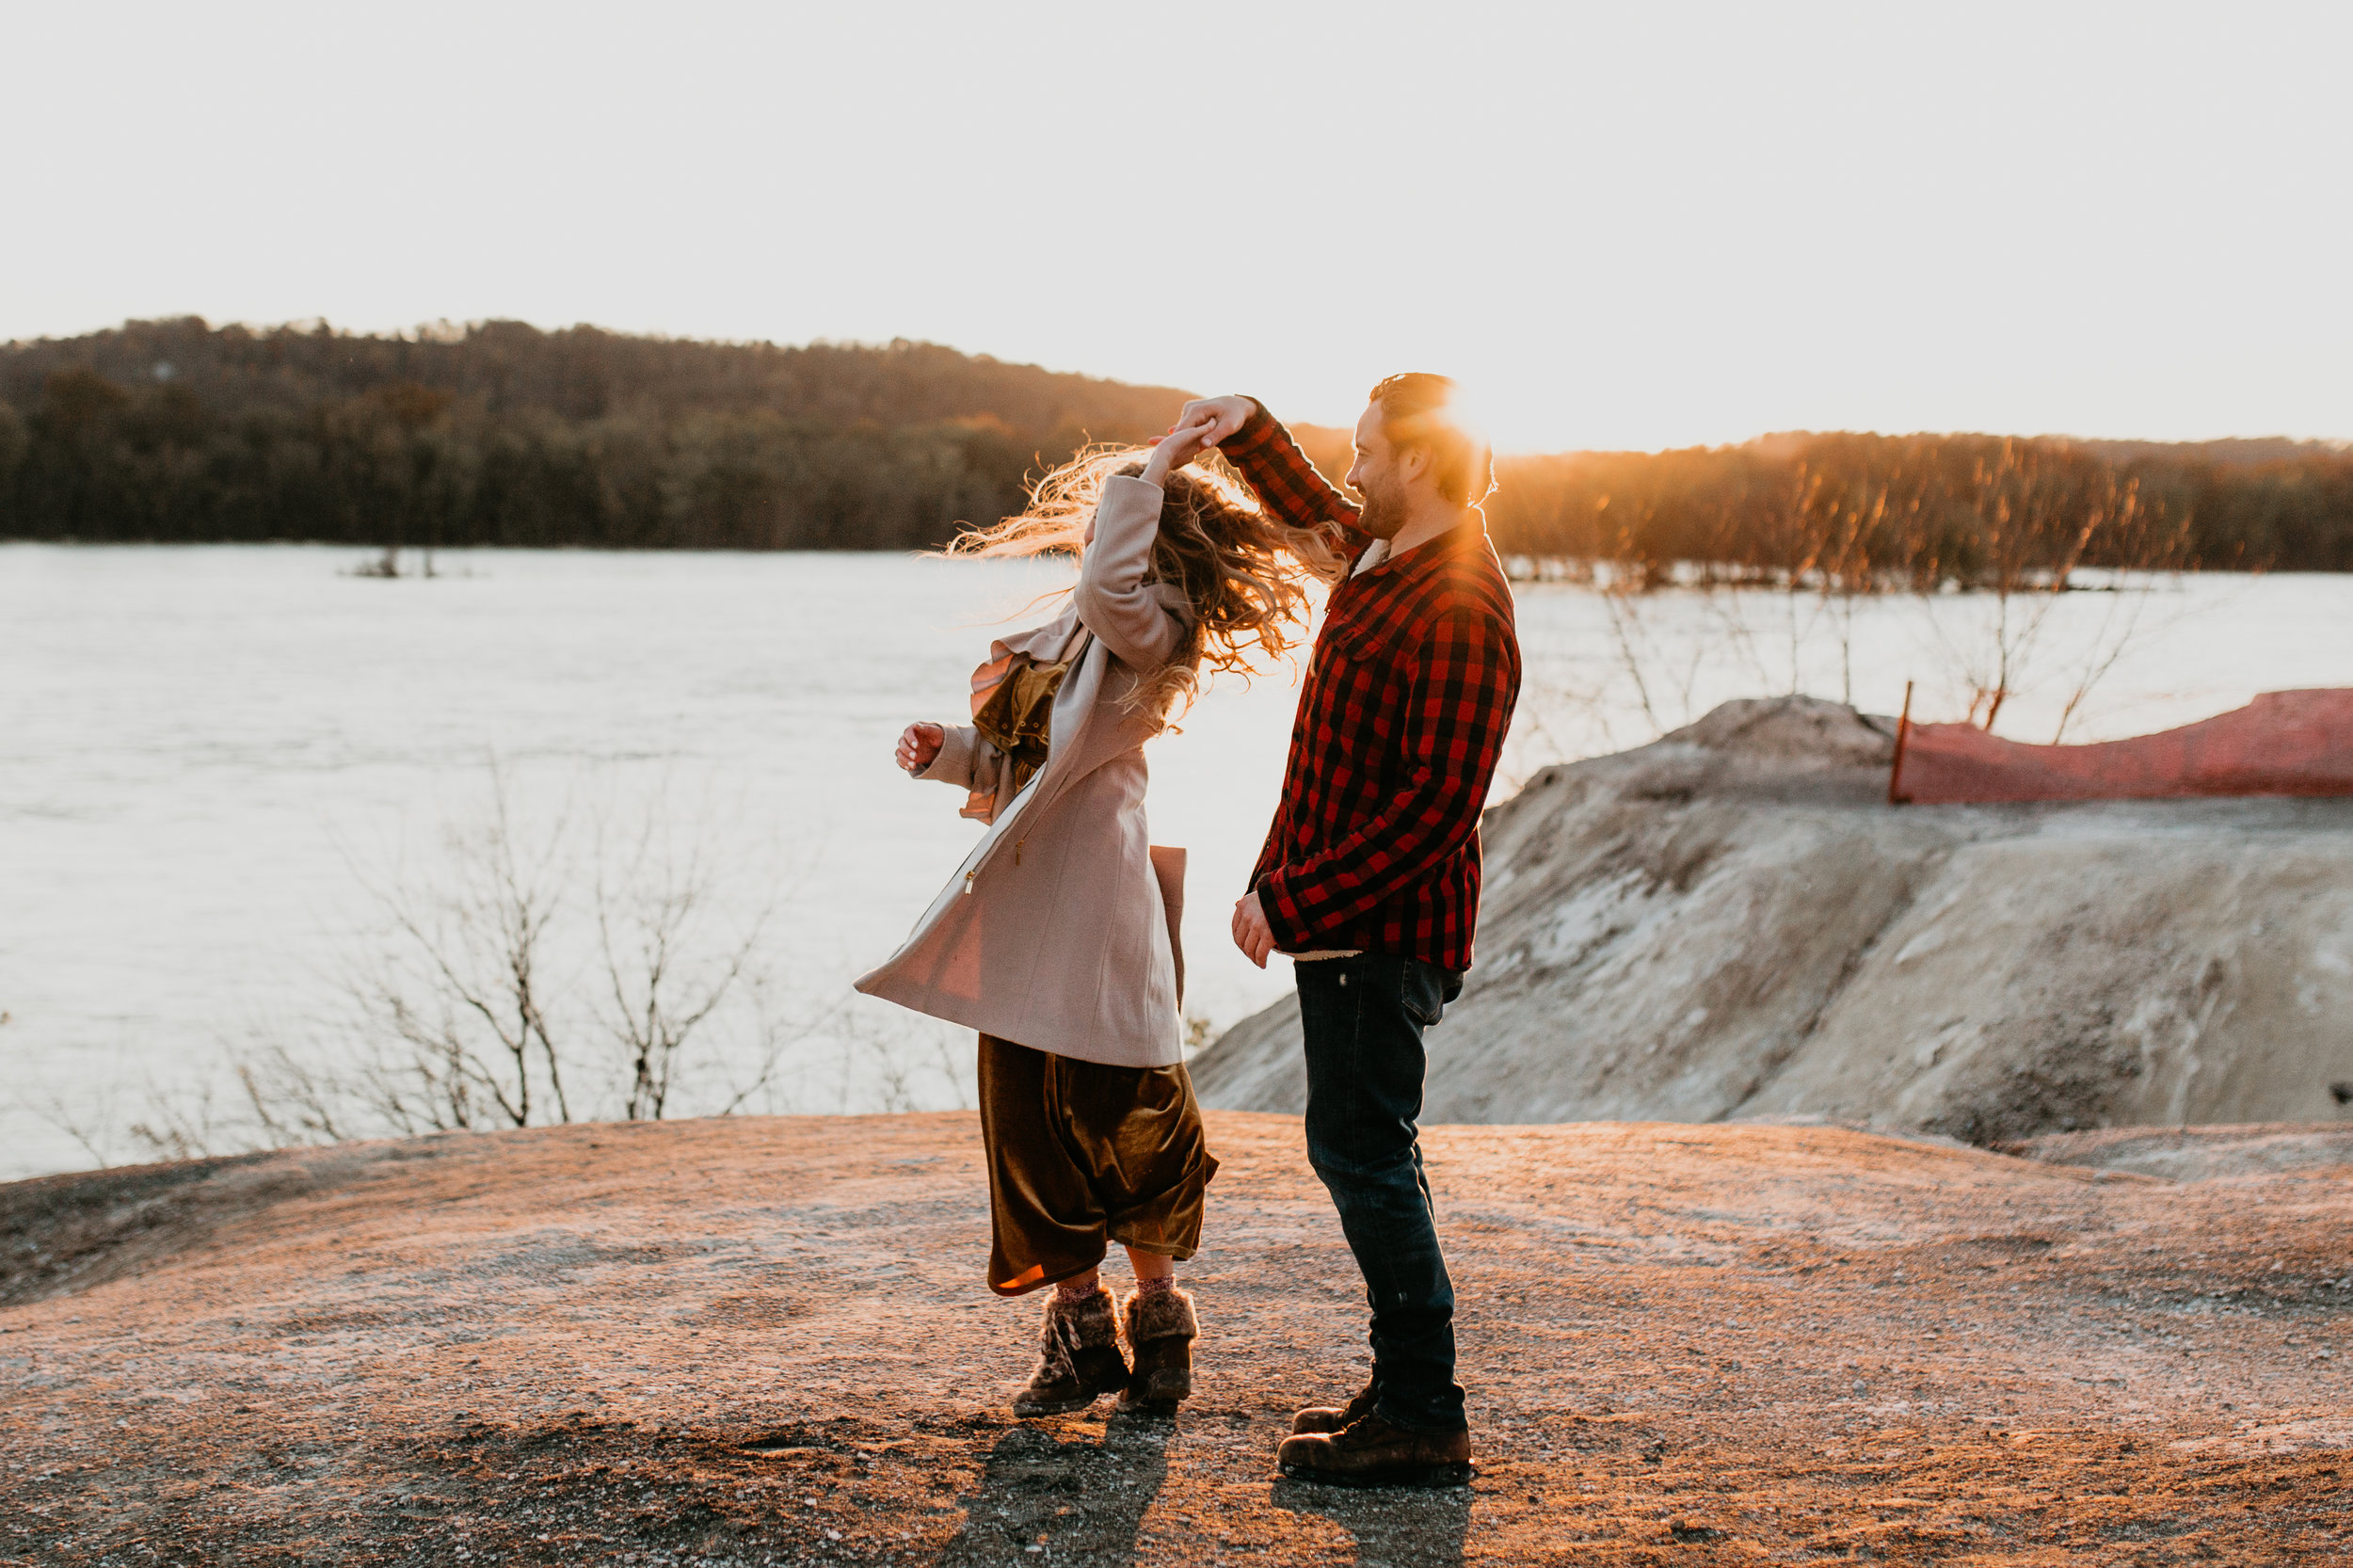 nicole-daacke-photography-white-cliffs-of-conoy-in-lancaster-pa-pennsylvania-adventure-session-adventure-elopement-photographer-engagement session-in-lancaster-pa-photographer-golden-sunset-winter-solstice-wedding-riverside-elopement-4173.jpg